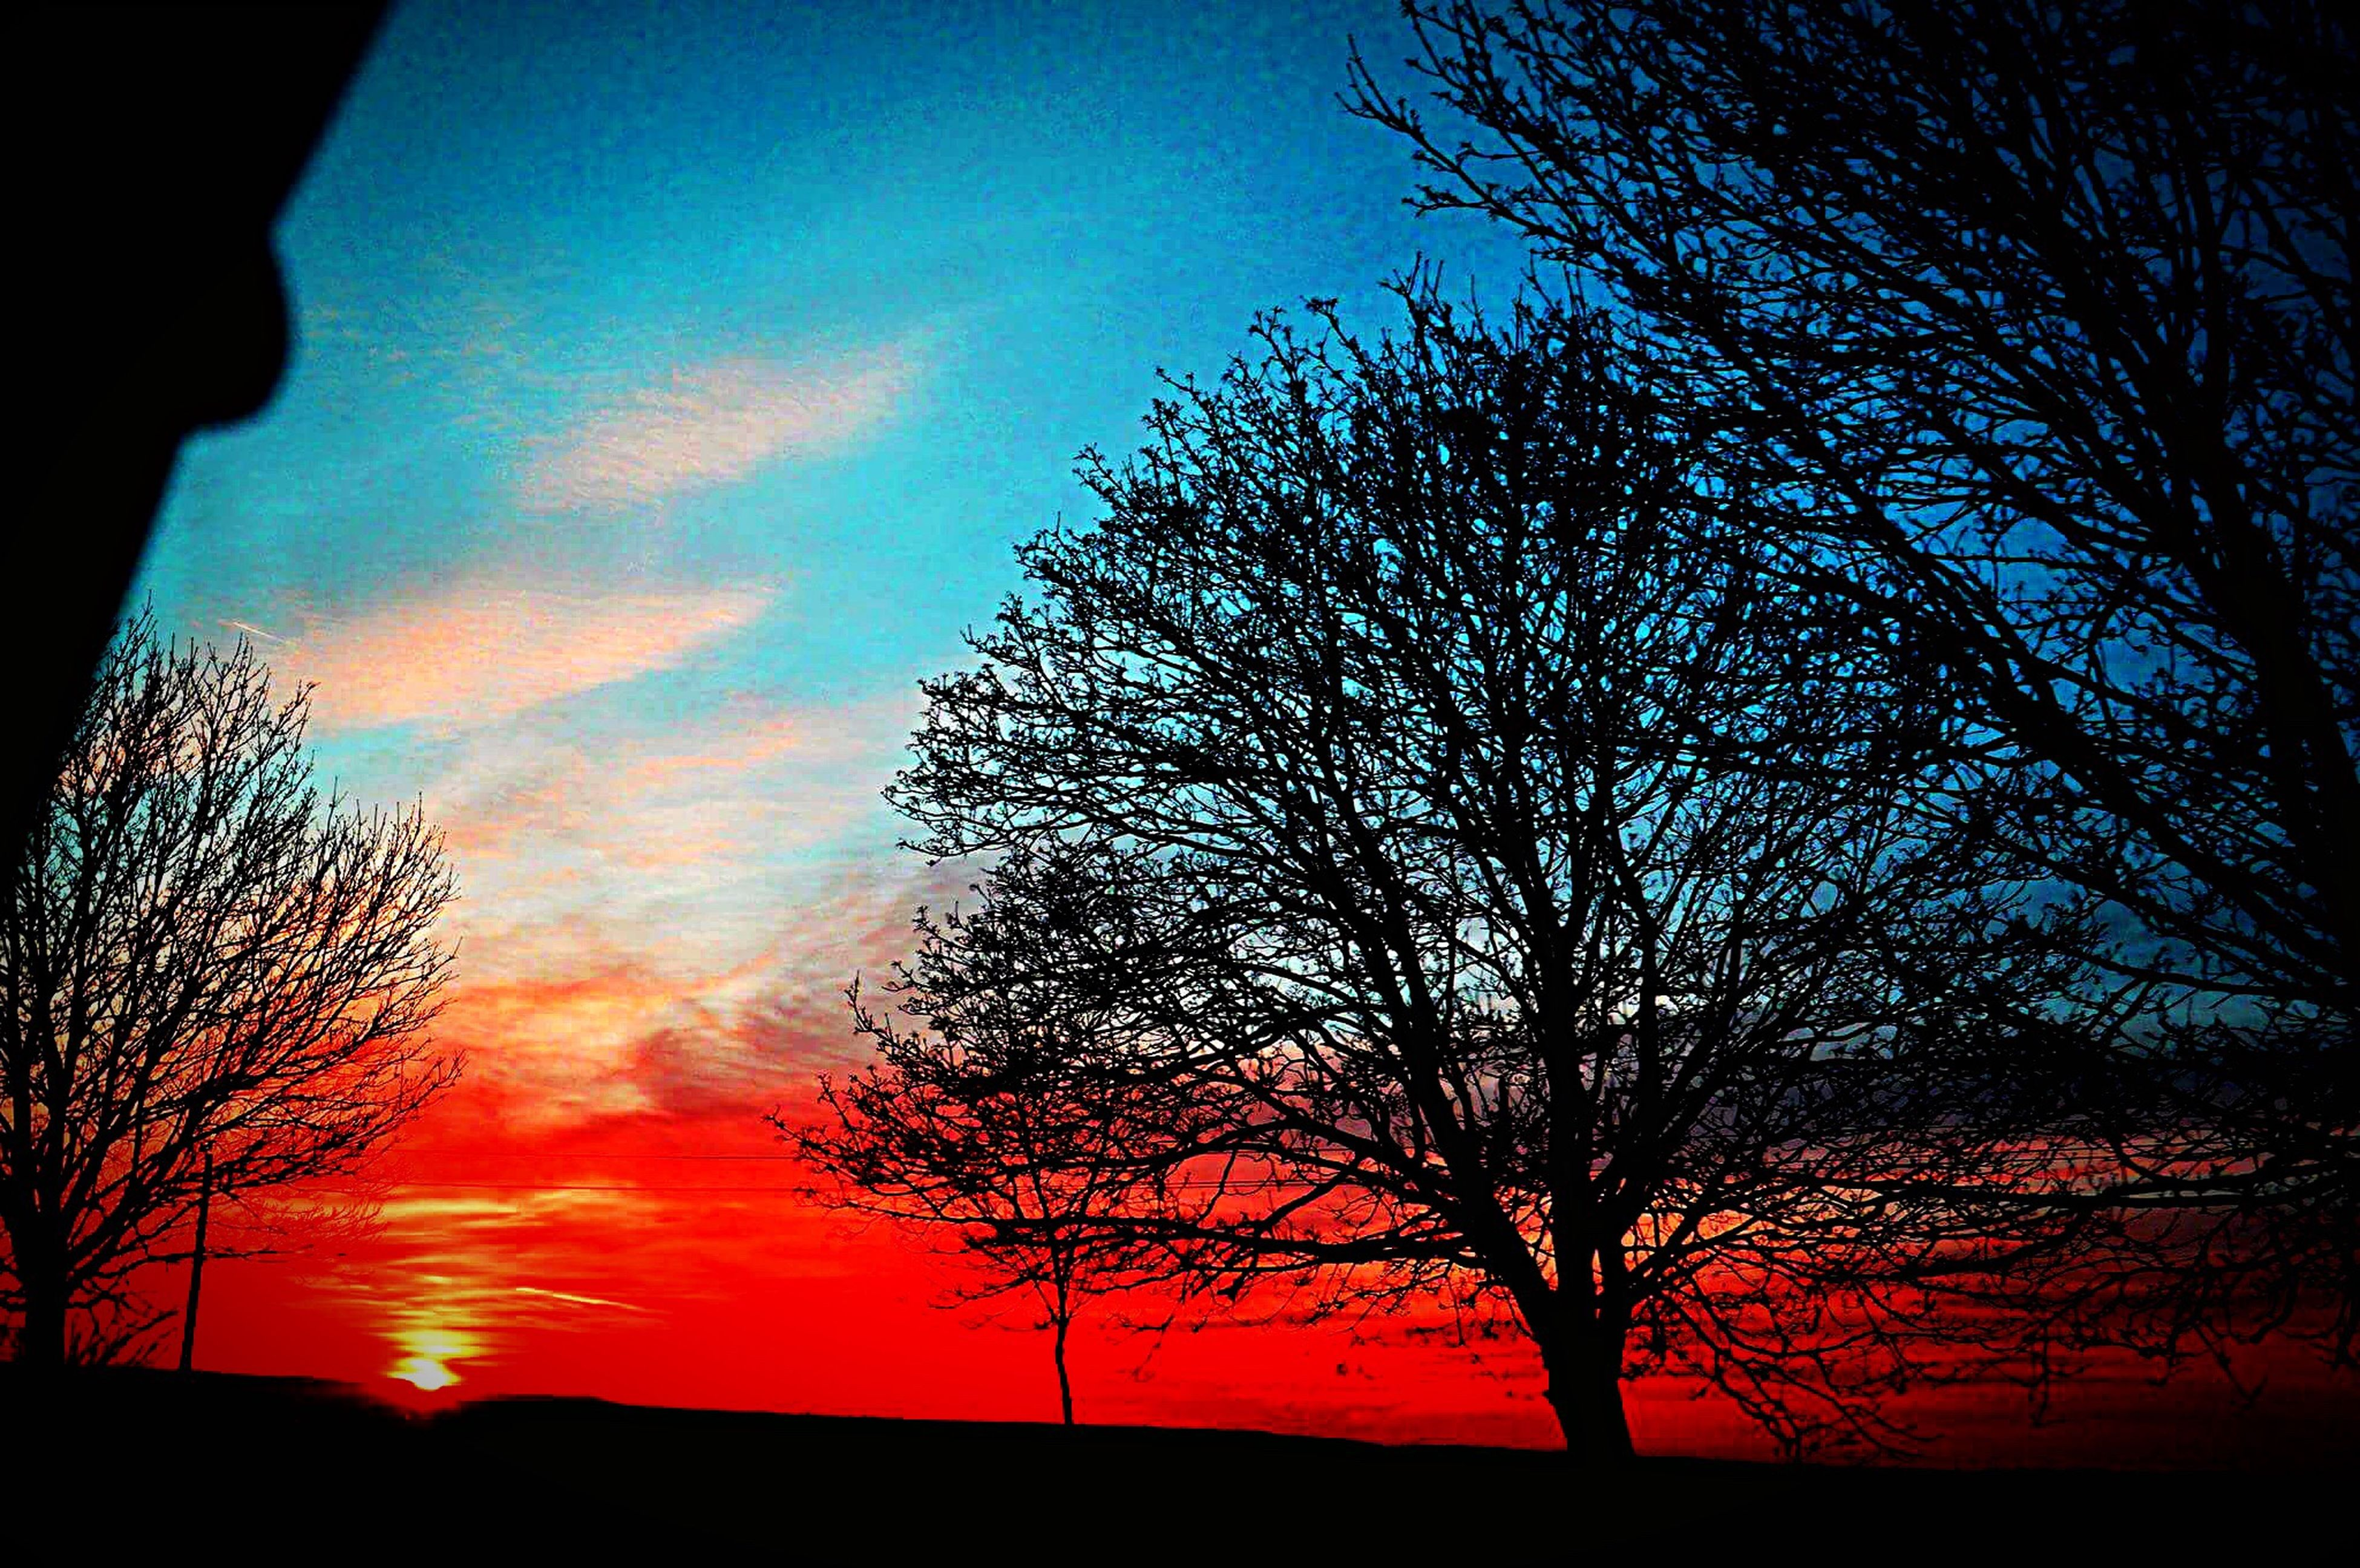 sunset, silhouette, tranquil scene, scenics, tree, tranquility, beauty in nature, bare tree, sky, landscape, branch, nature, orange color, dark, cloud - sky, field, outdoors, non-urban scene, blue, majestic, no people, dramatic sky, remote, atmospheric mood, moody sky, romantic sky